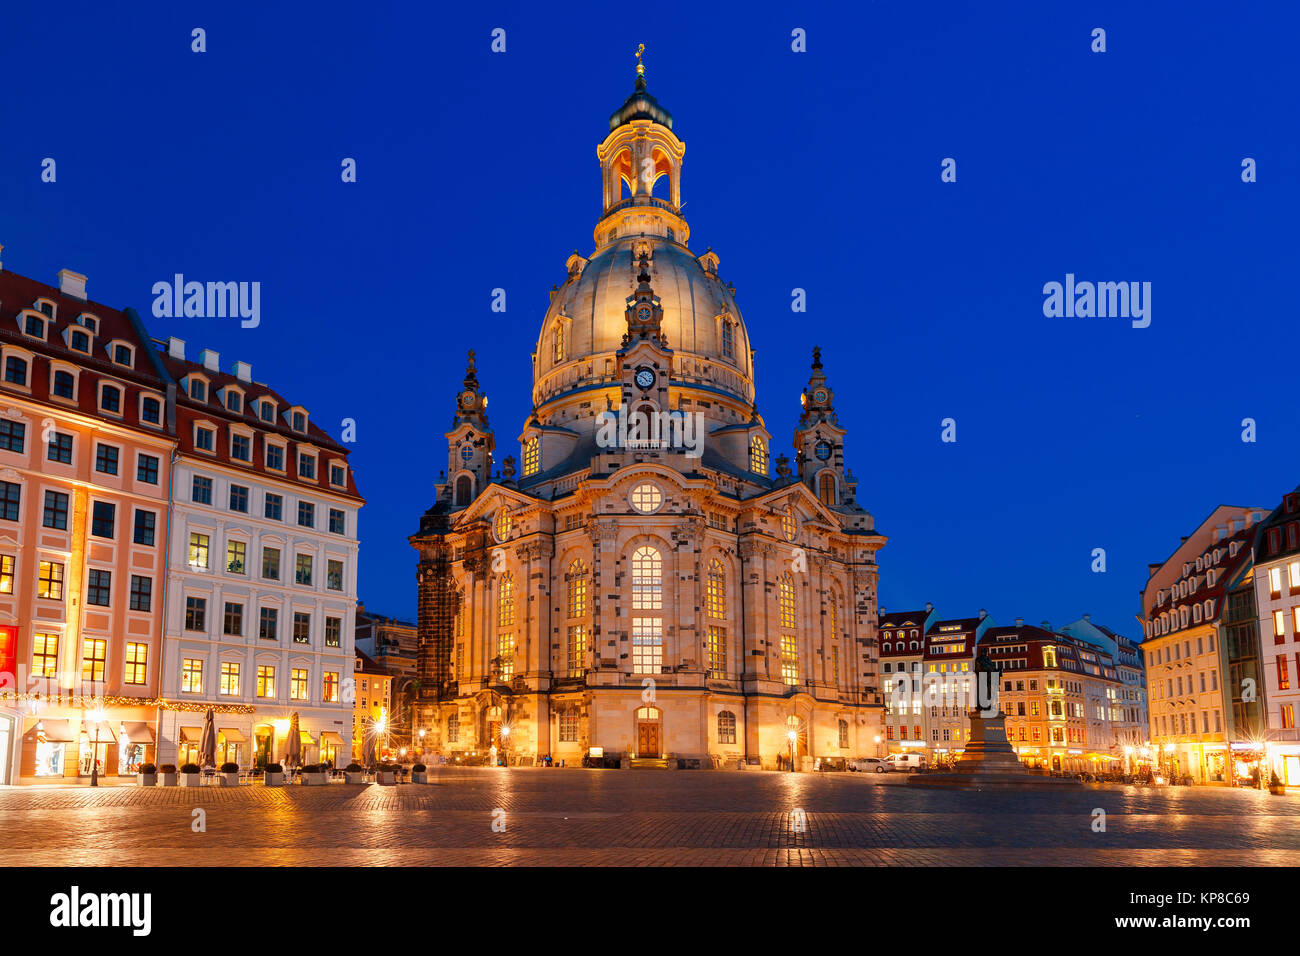 Frauenkirche at night in Dresden, Germany - Stock Image